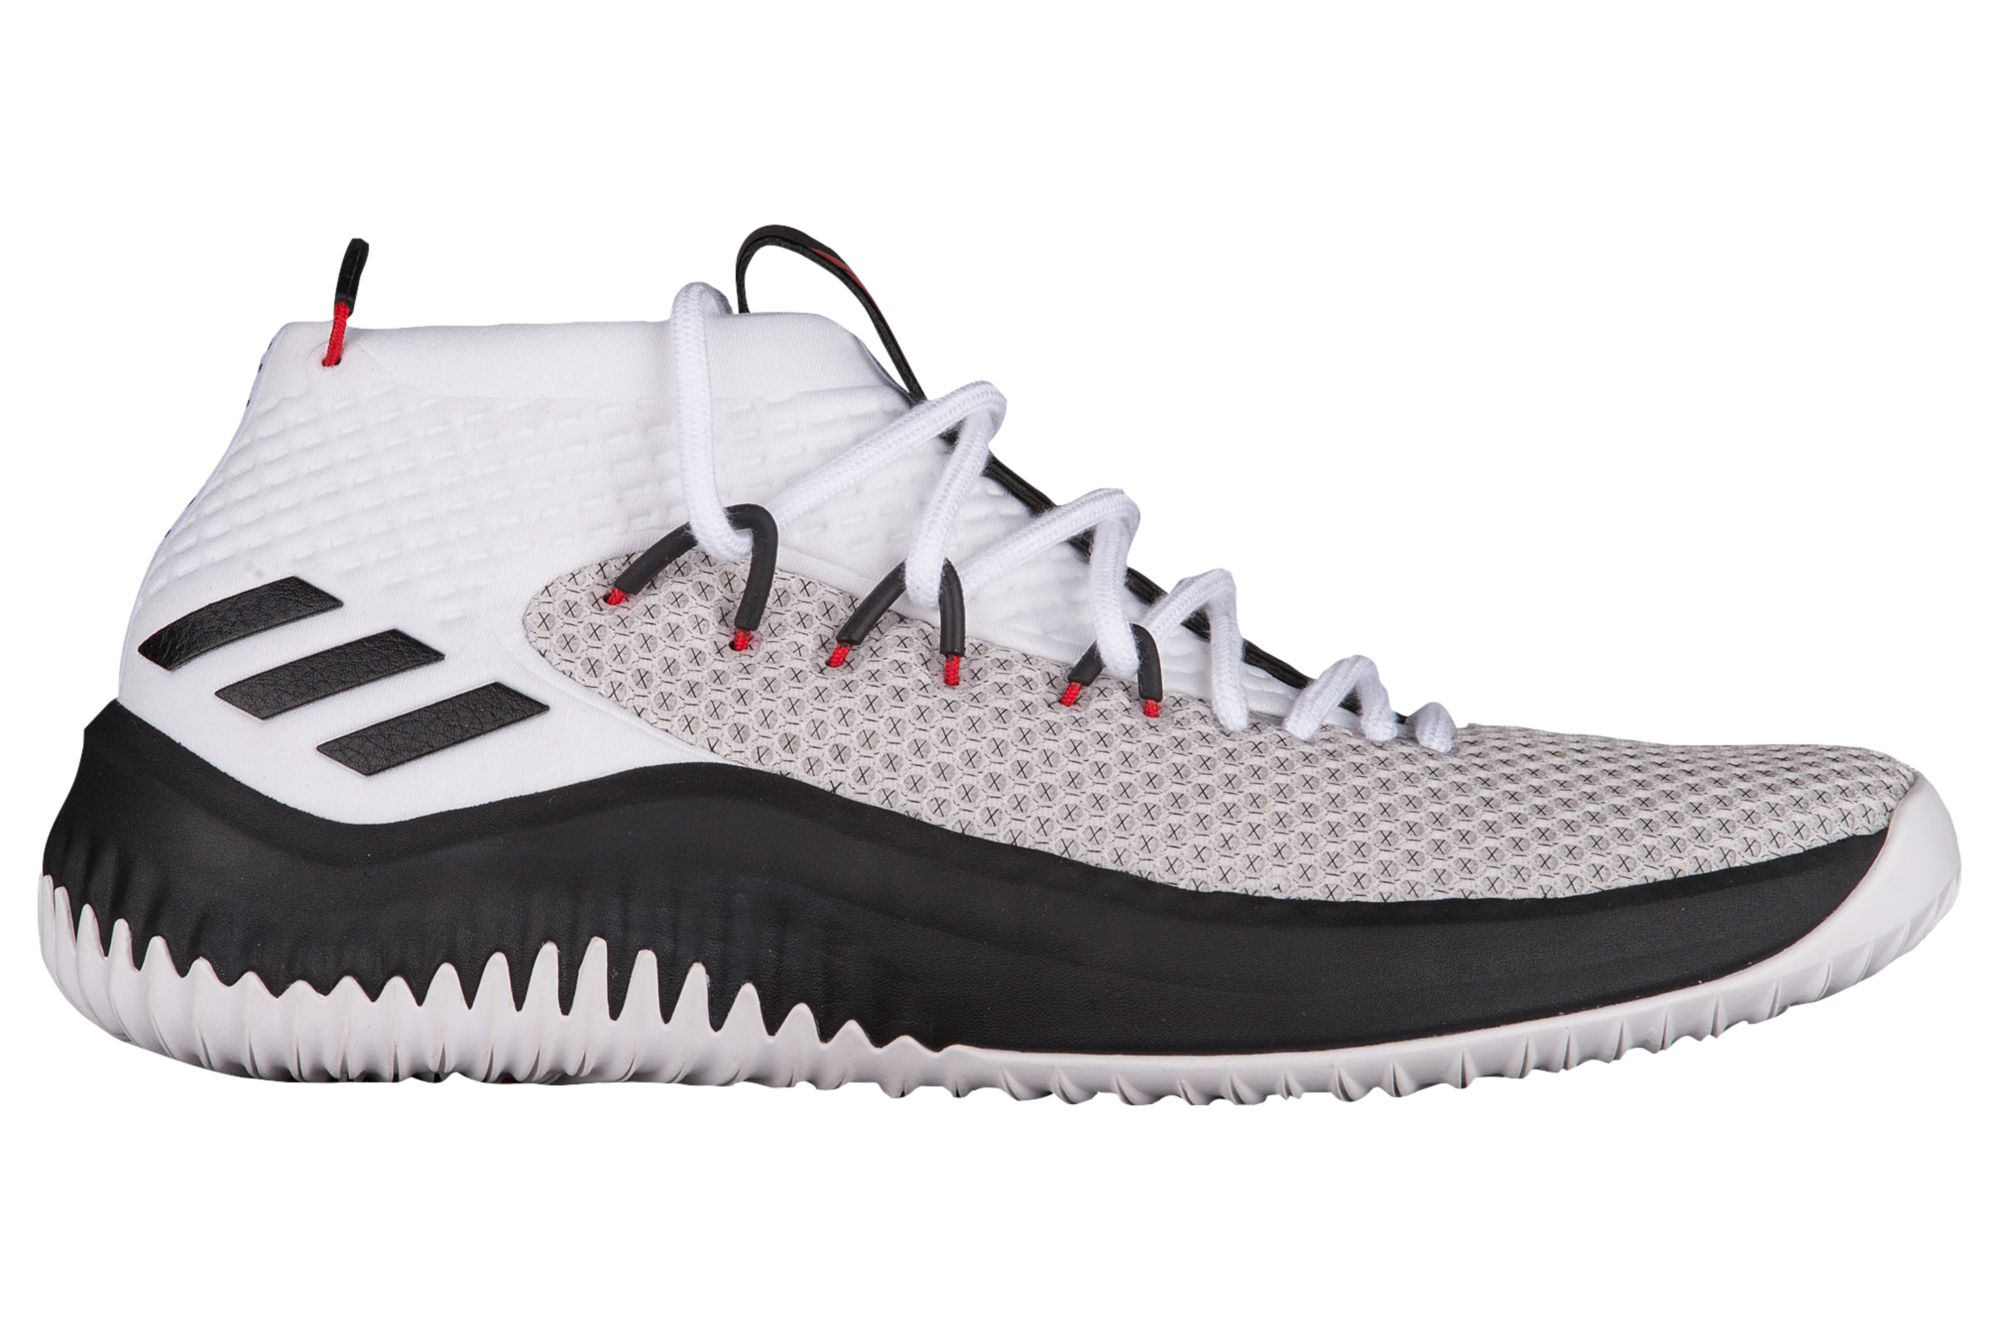 The adidas Dame 4 Detailed Look and Release Date WearTesters